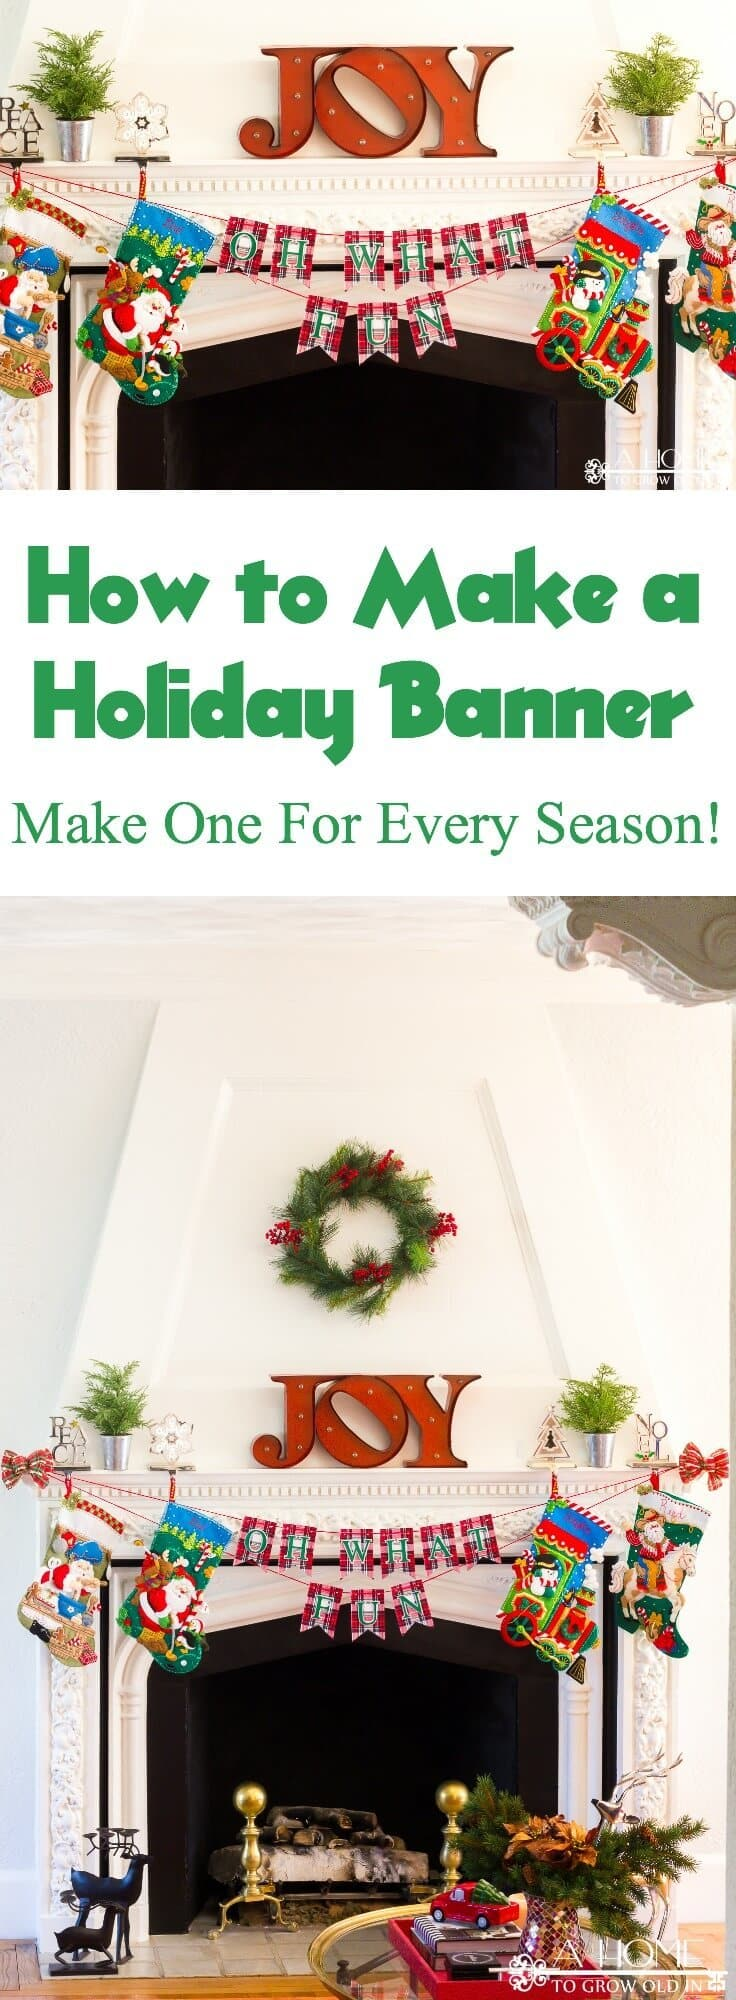 This holiday banner or bunting is an easy DIY that makes your fireplace mantel look so festive! It can be customized to your decor or the current holiday! You'll definitely want to pin this one for later!